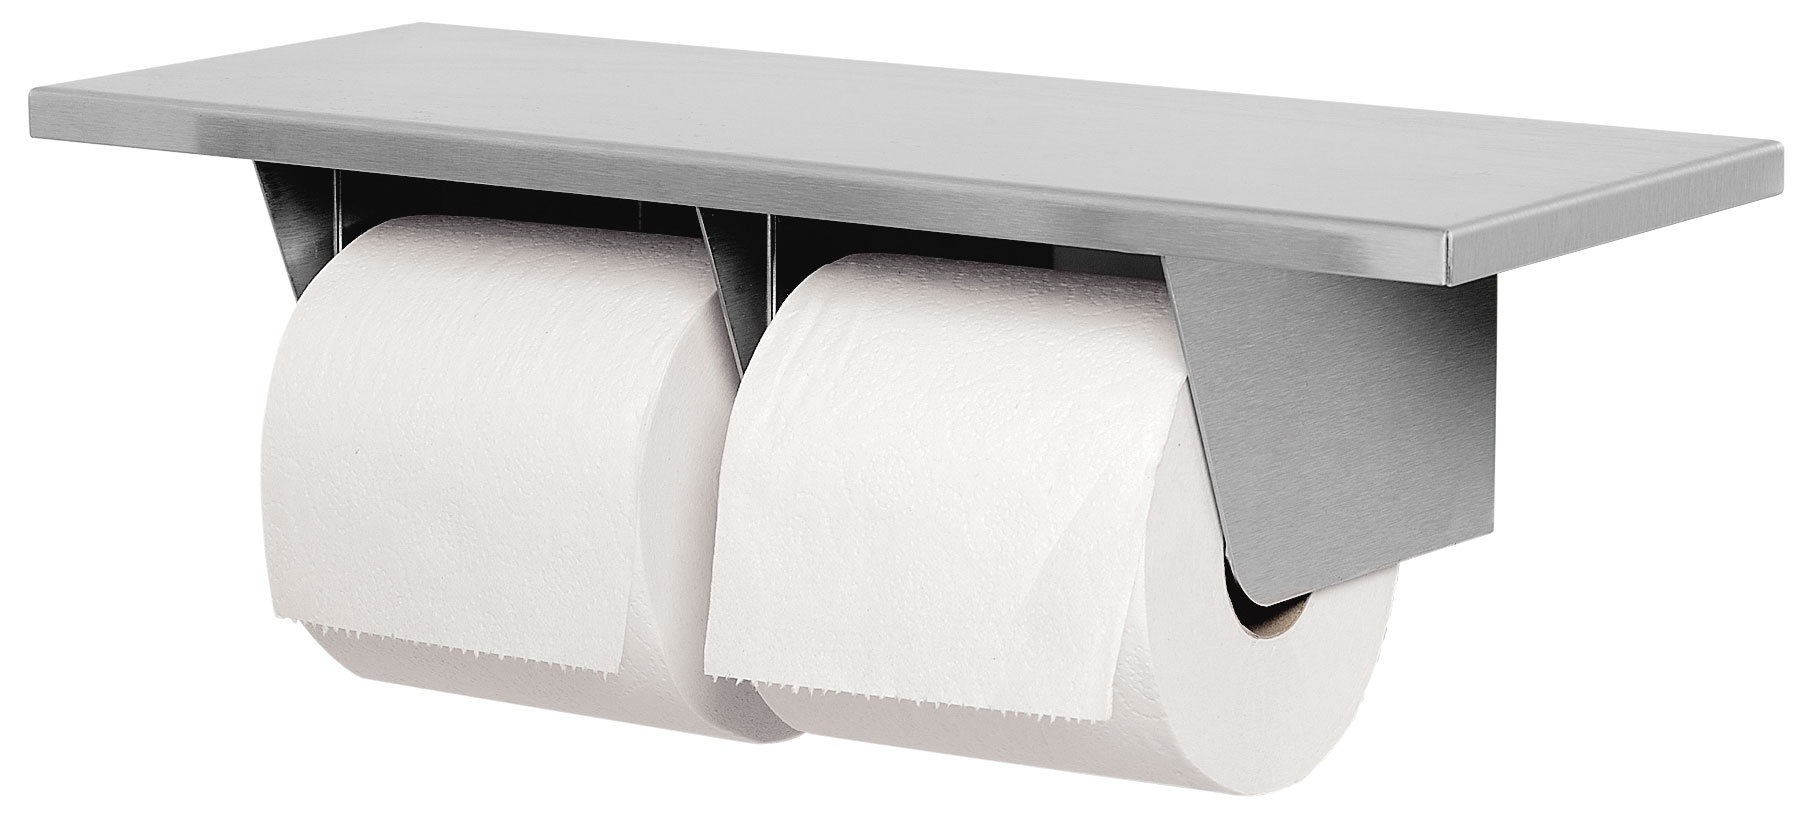 Bradley 5263 Double Roll Toilet Paper Dispenser With Shelf